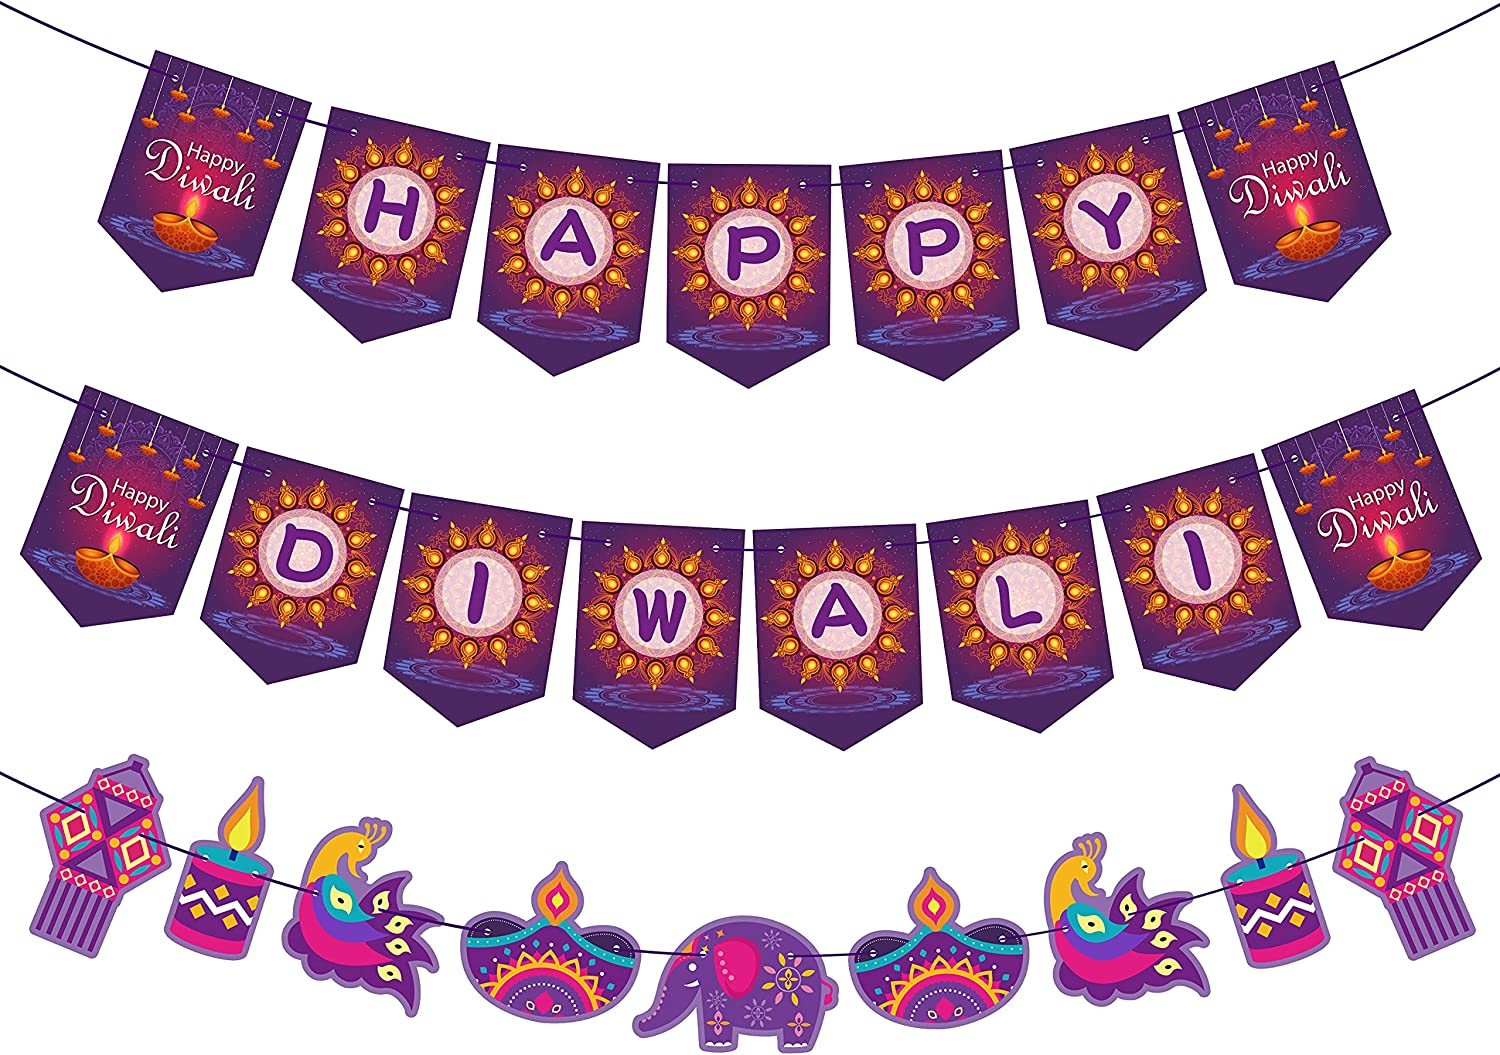 Happy Diwali Banner Party Decorations Deepavali Hanging Banner Purple Card Porch Sign Decor Festival of Lights Row of Lamps Banners Hindu Diwali Greeting Party Decoration Supplies